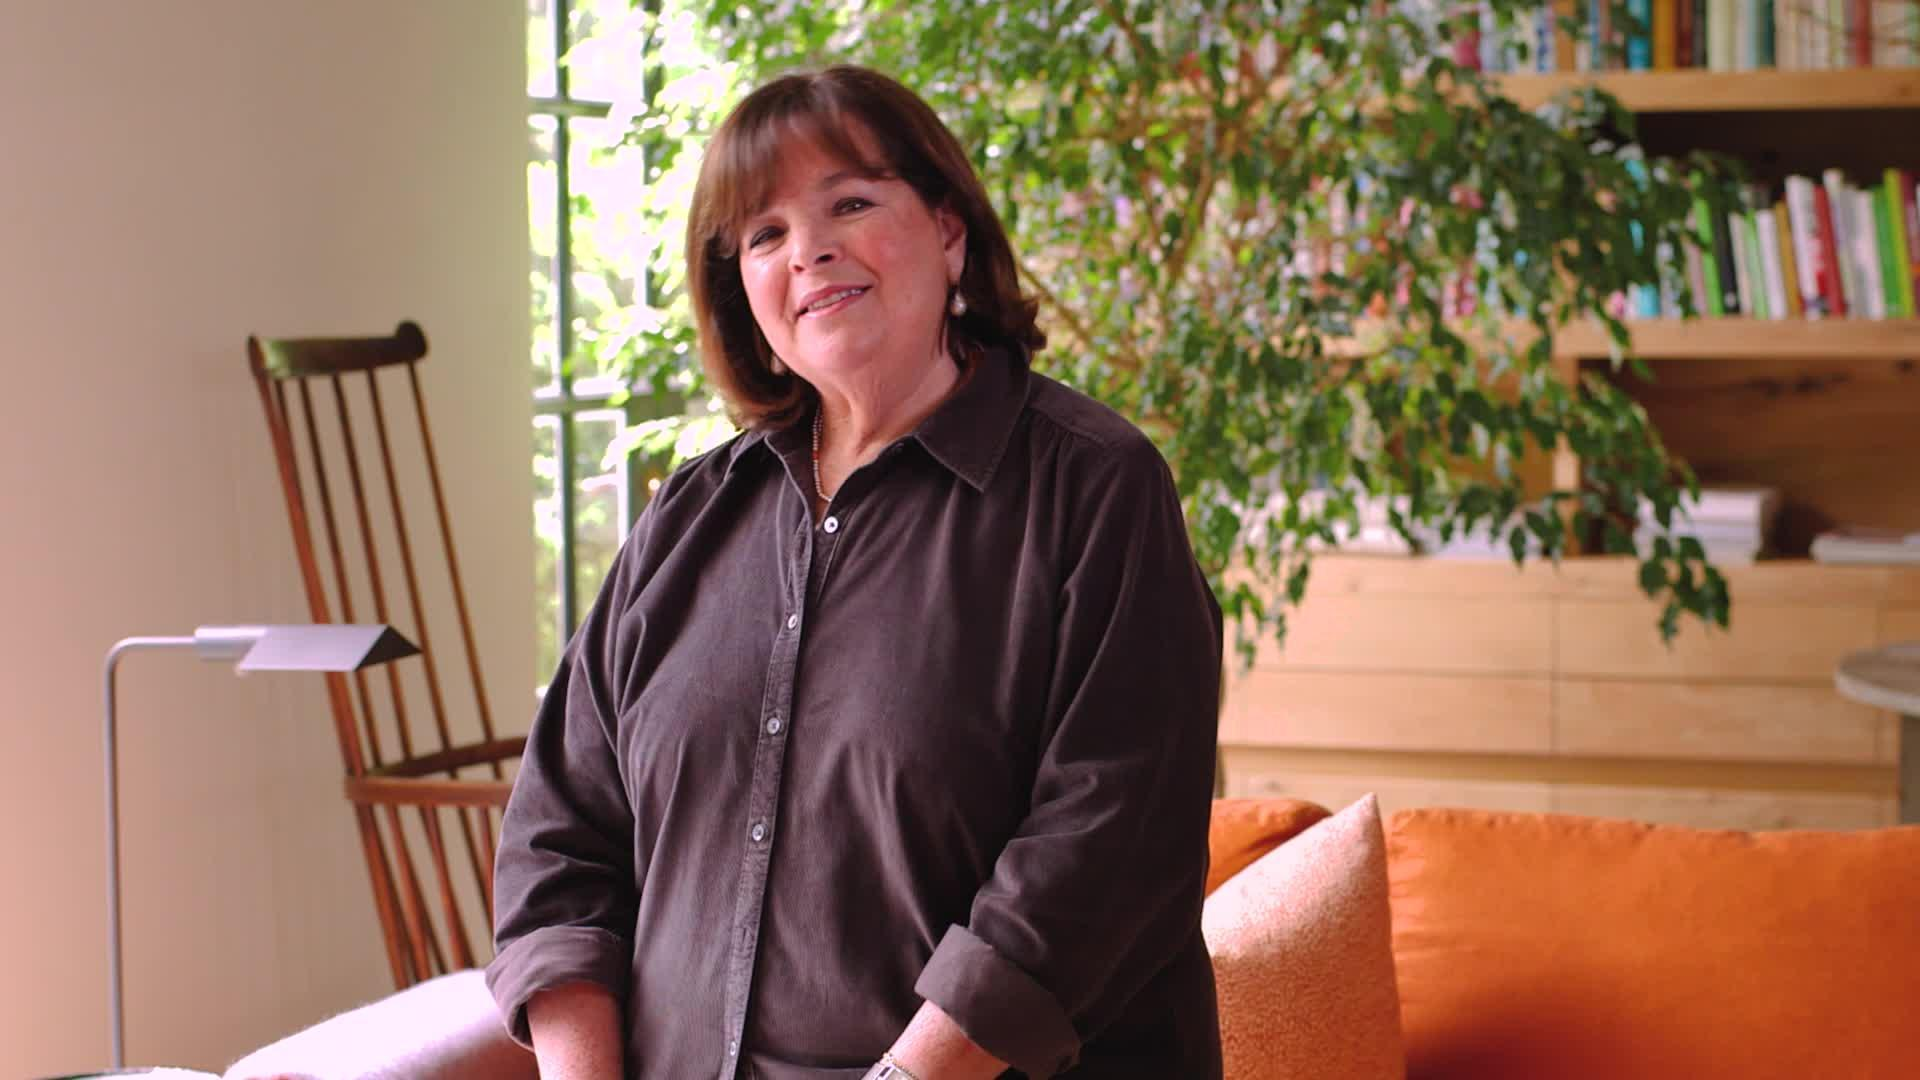 Barefoot Contessa Ina Garten Shares The Secret To The Perfect Thanksgiving Meal